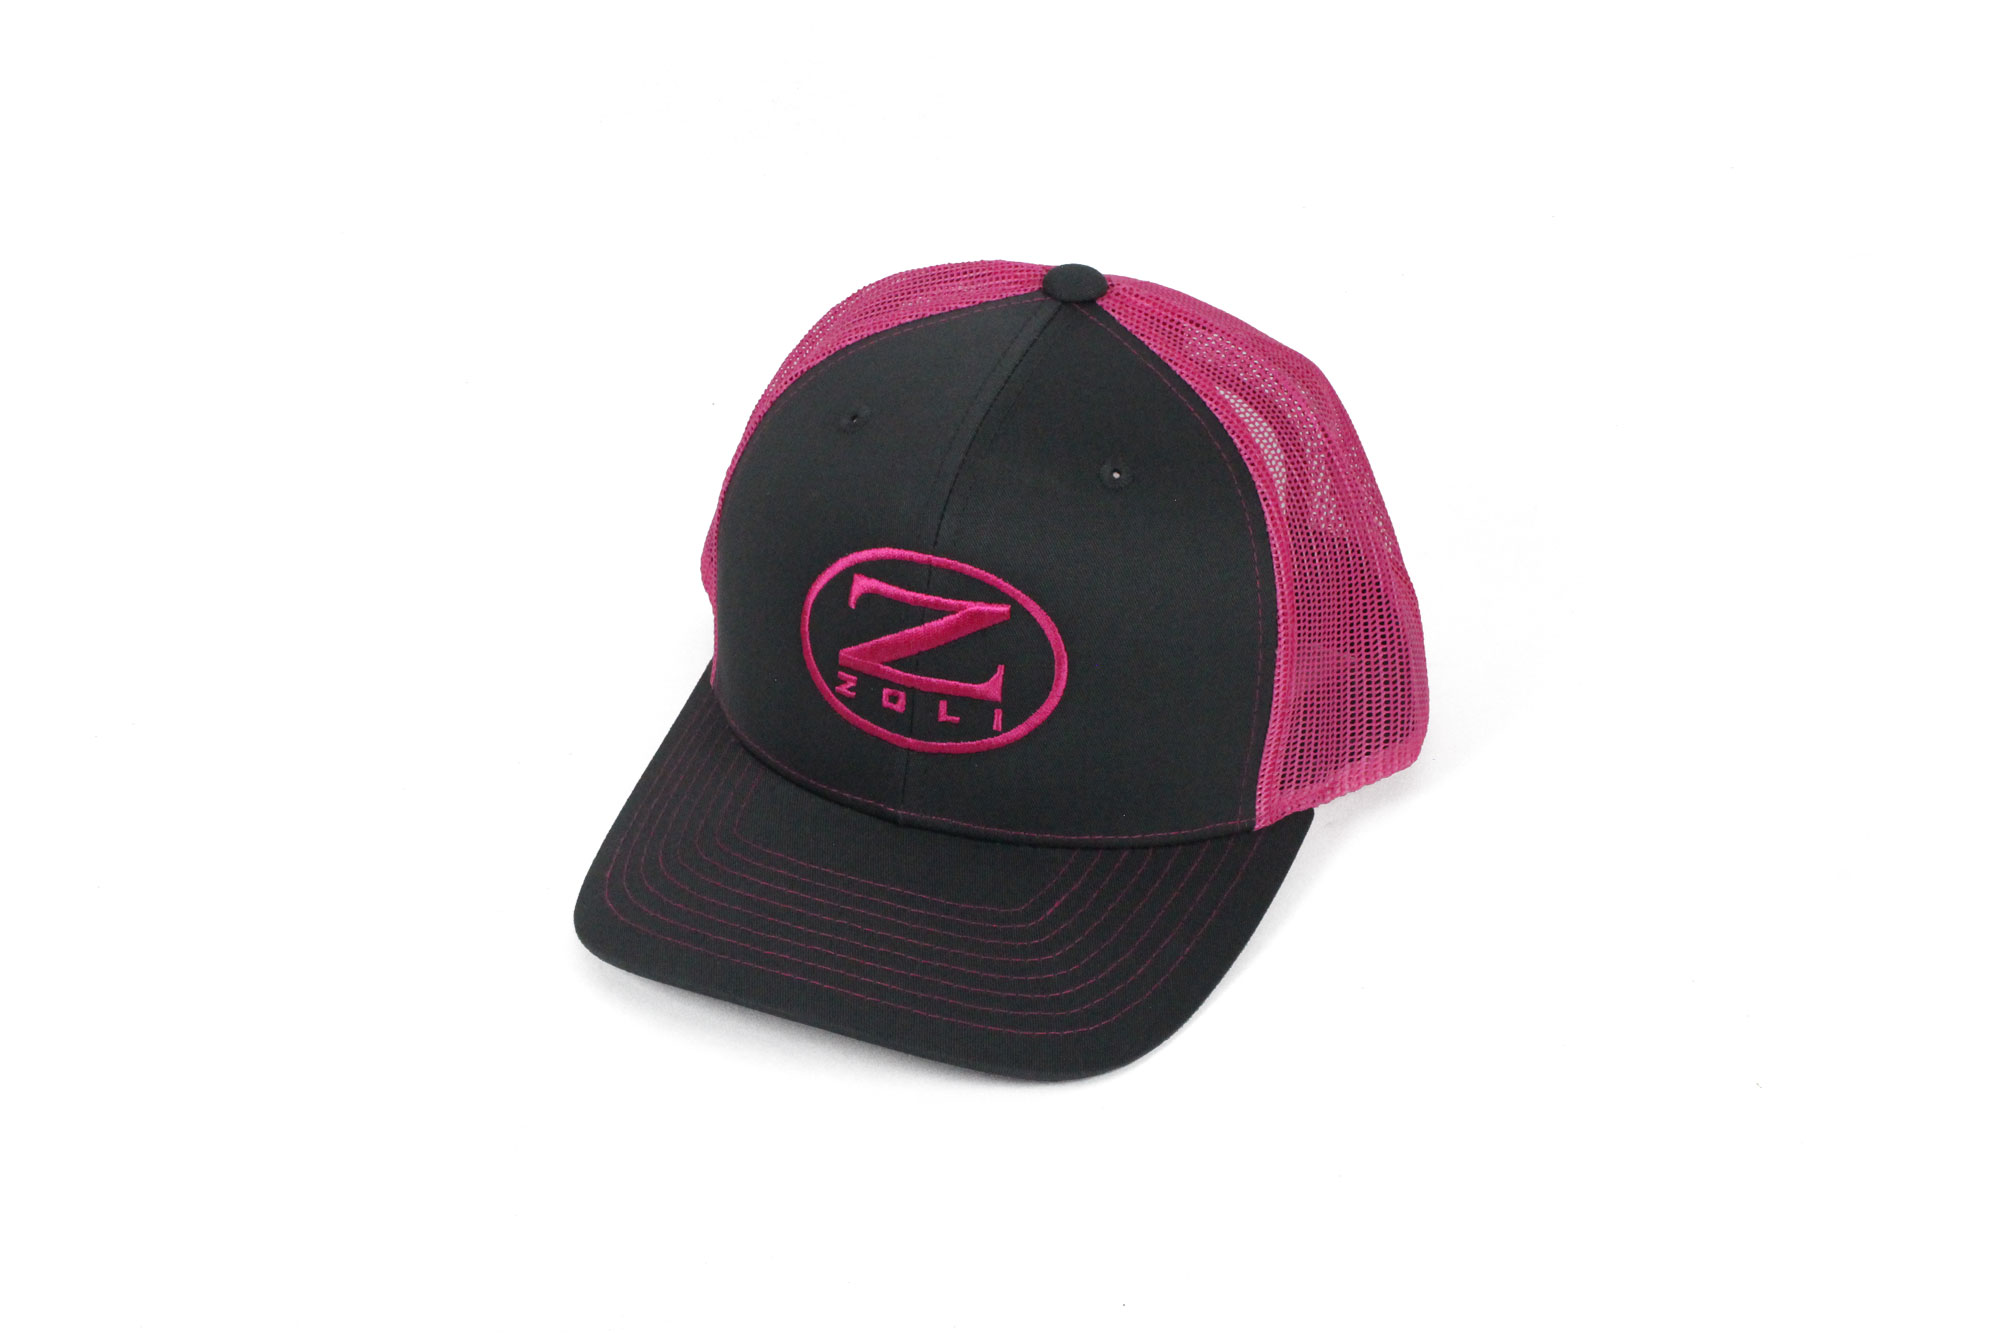 Zoli Embroidered Snap Back Hat (Pink)